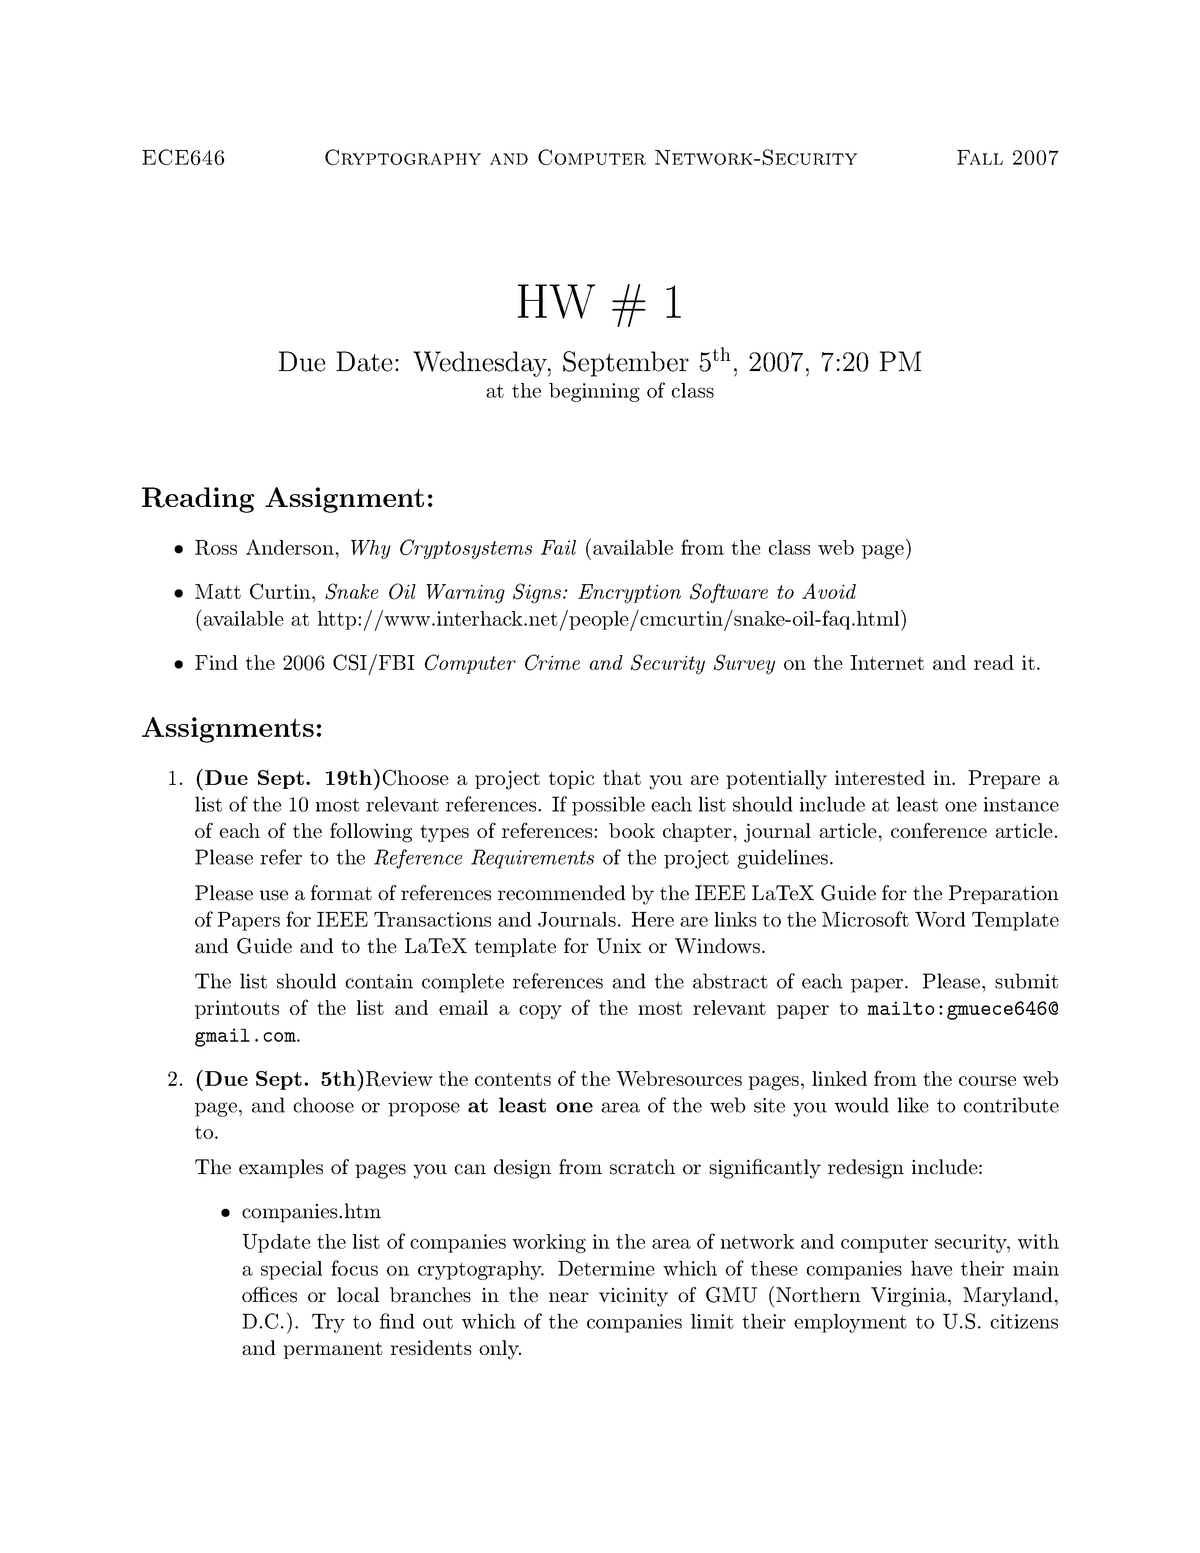 Seminar assignments - Homework 1 -cryptography and computer